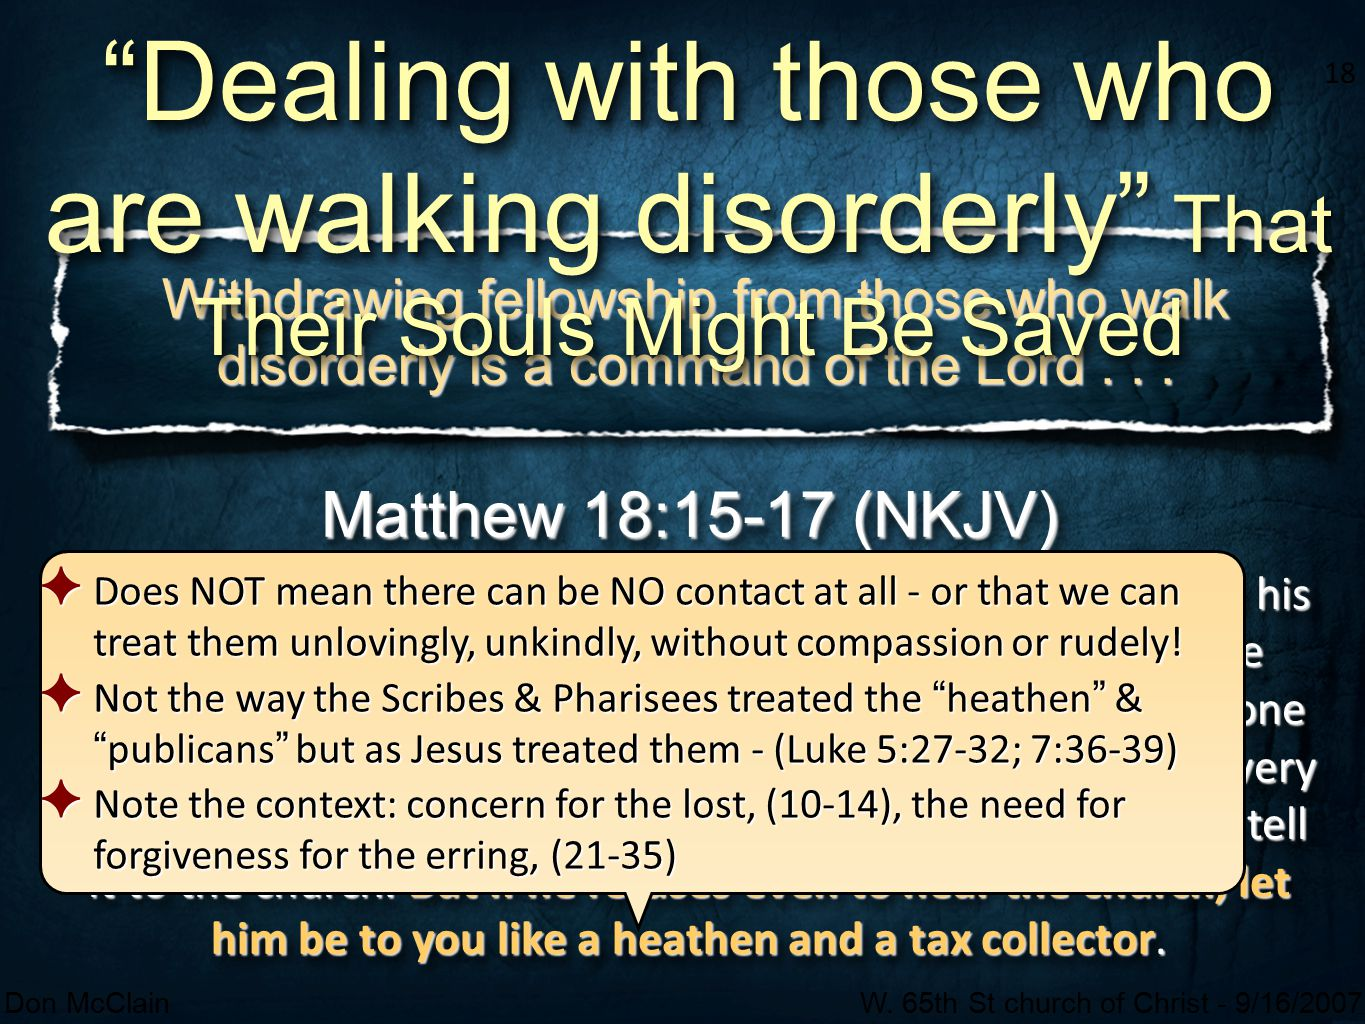 Dealing with those who are walking disorderly That Their Souls Might Be Saved